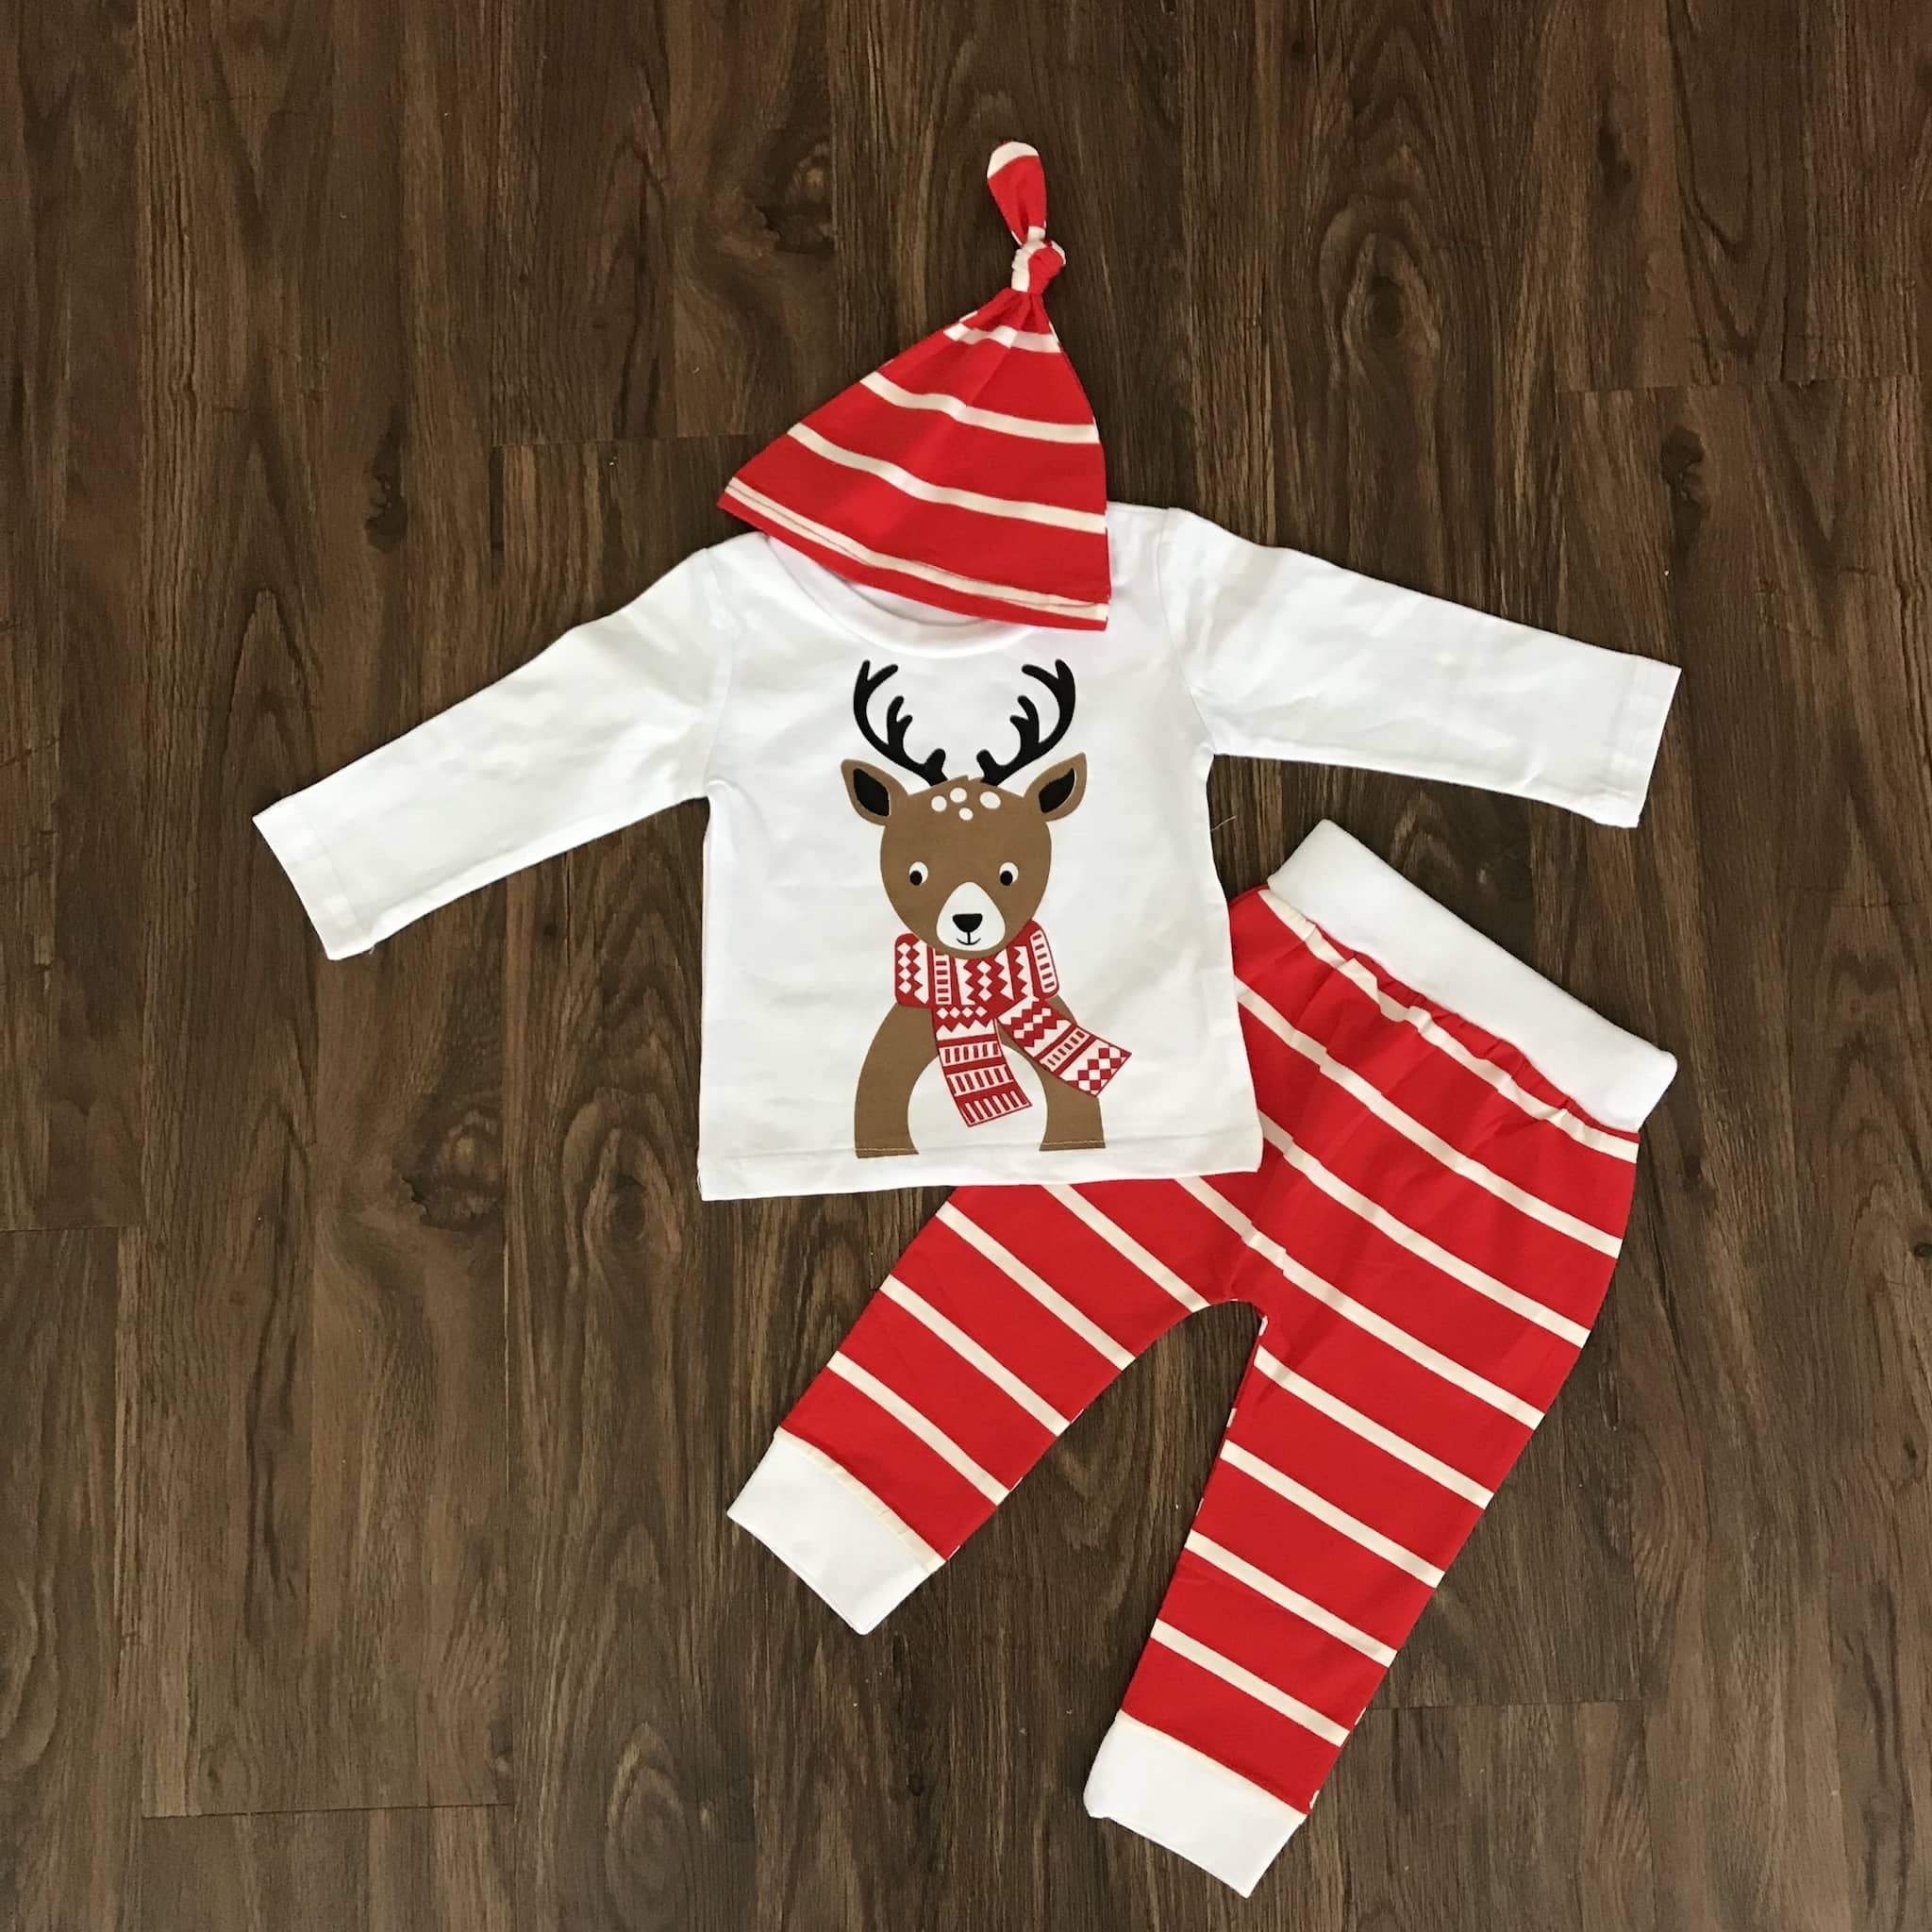 Reindeer Christmas 3 Piece Outfit Set